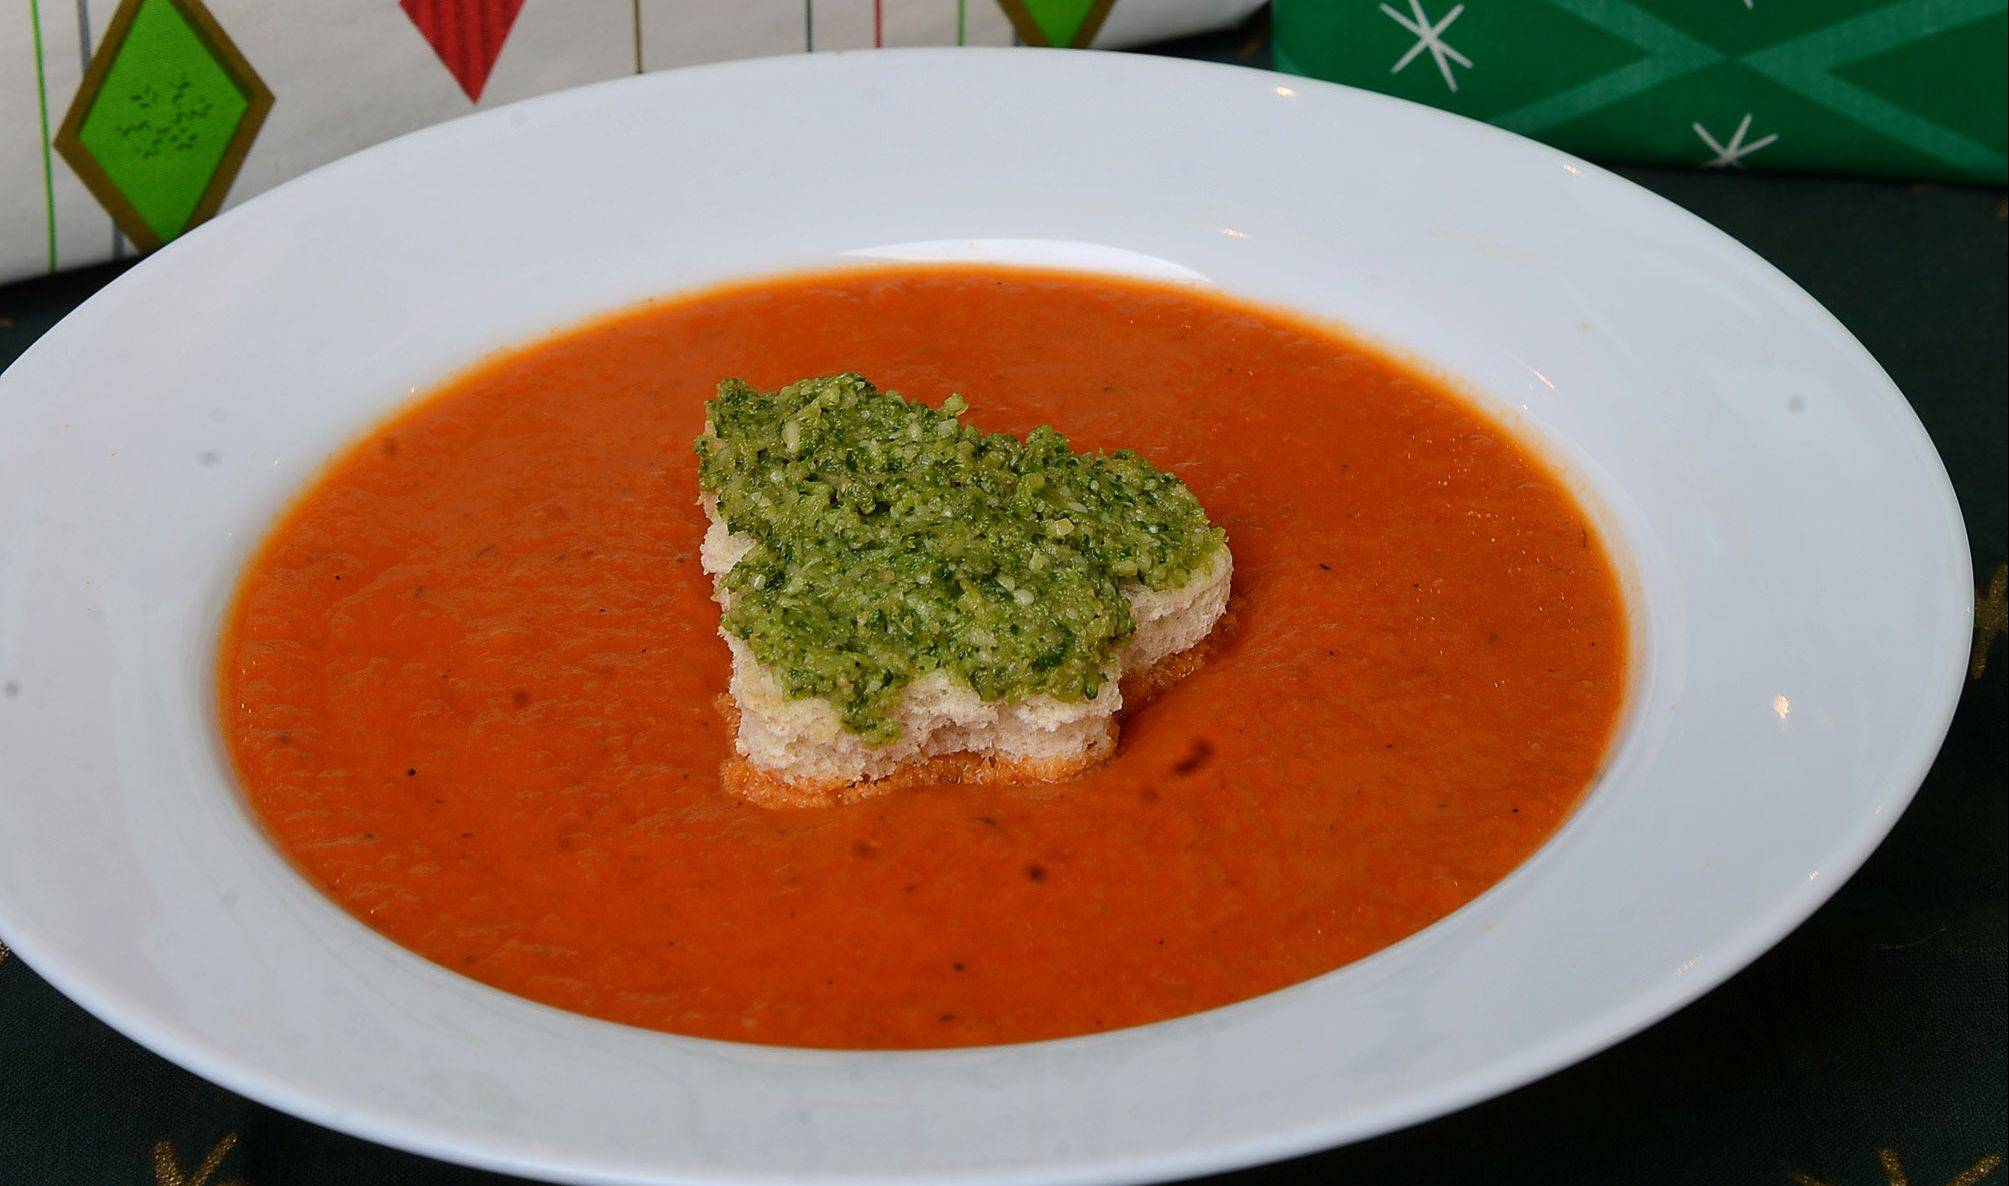 Broccoli pesto spread on Christmas tree croutons make roasted red pepper soup extra festive.